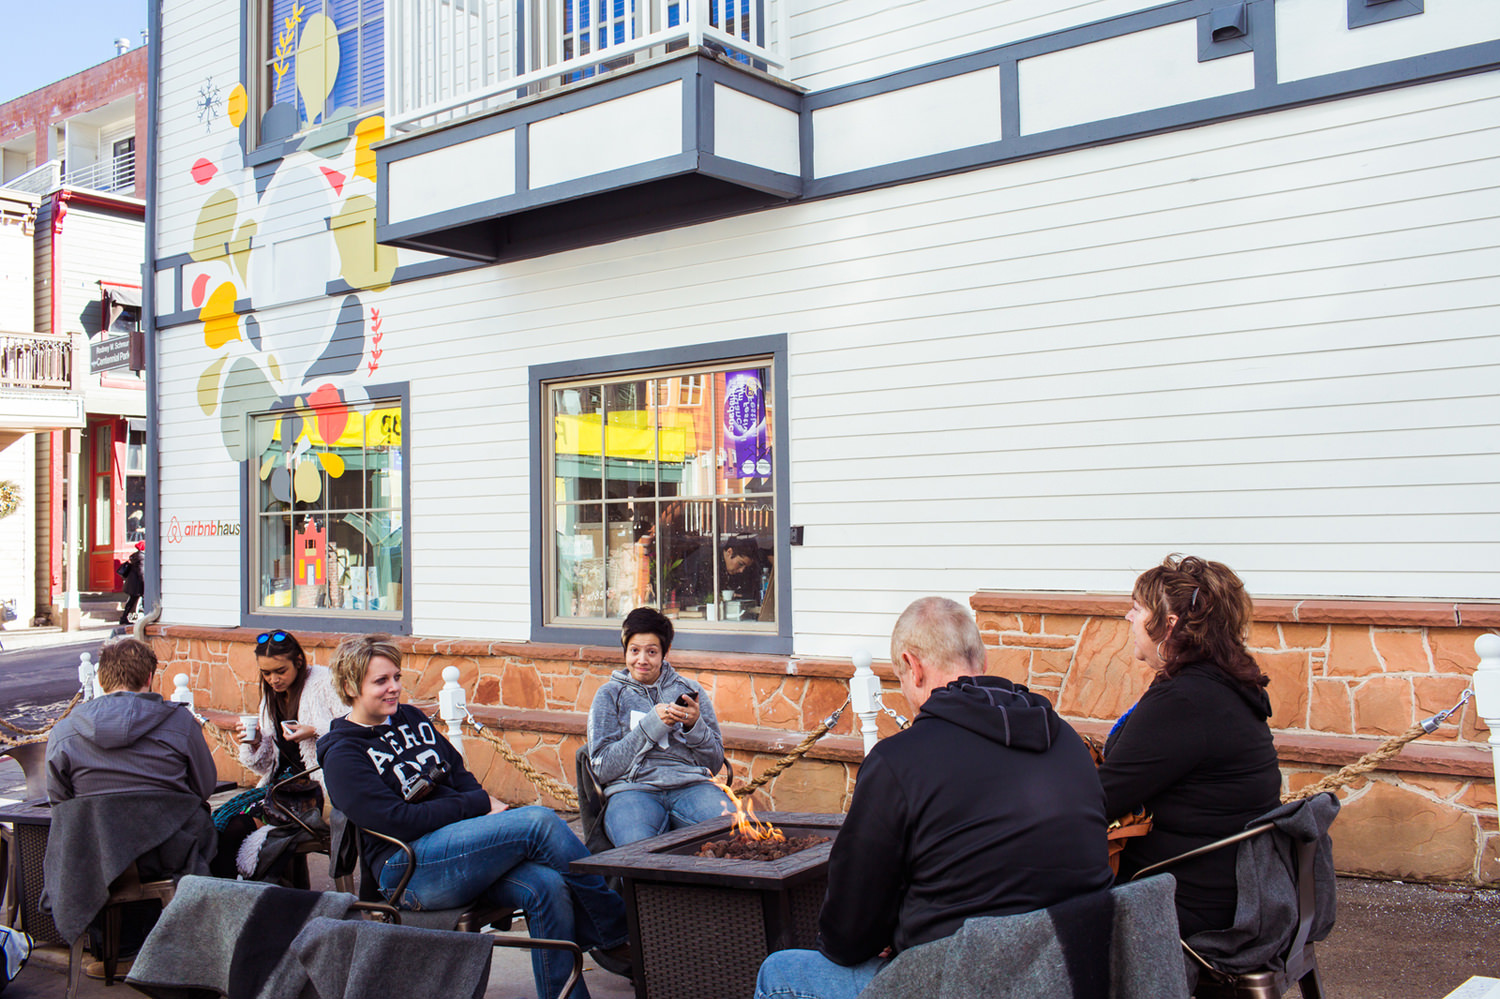 591 Main is lucky to have a little frontage along an alley in Park City. And Sundance 2015's unseasonably warm weather extended the footprint of the Airbnb Haus outside where guests enjoyed fire pits and cozy wool blankets.